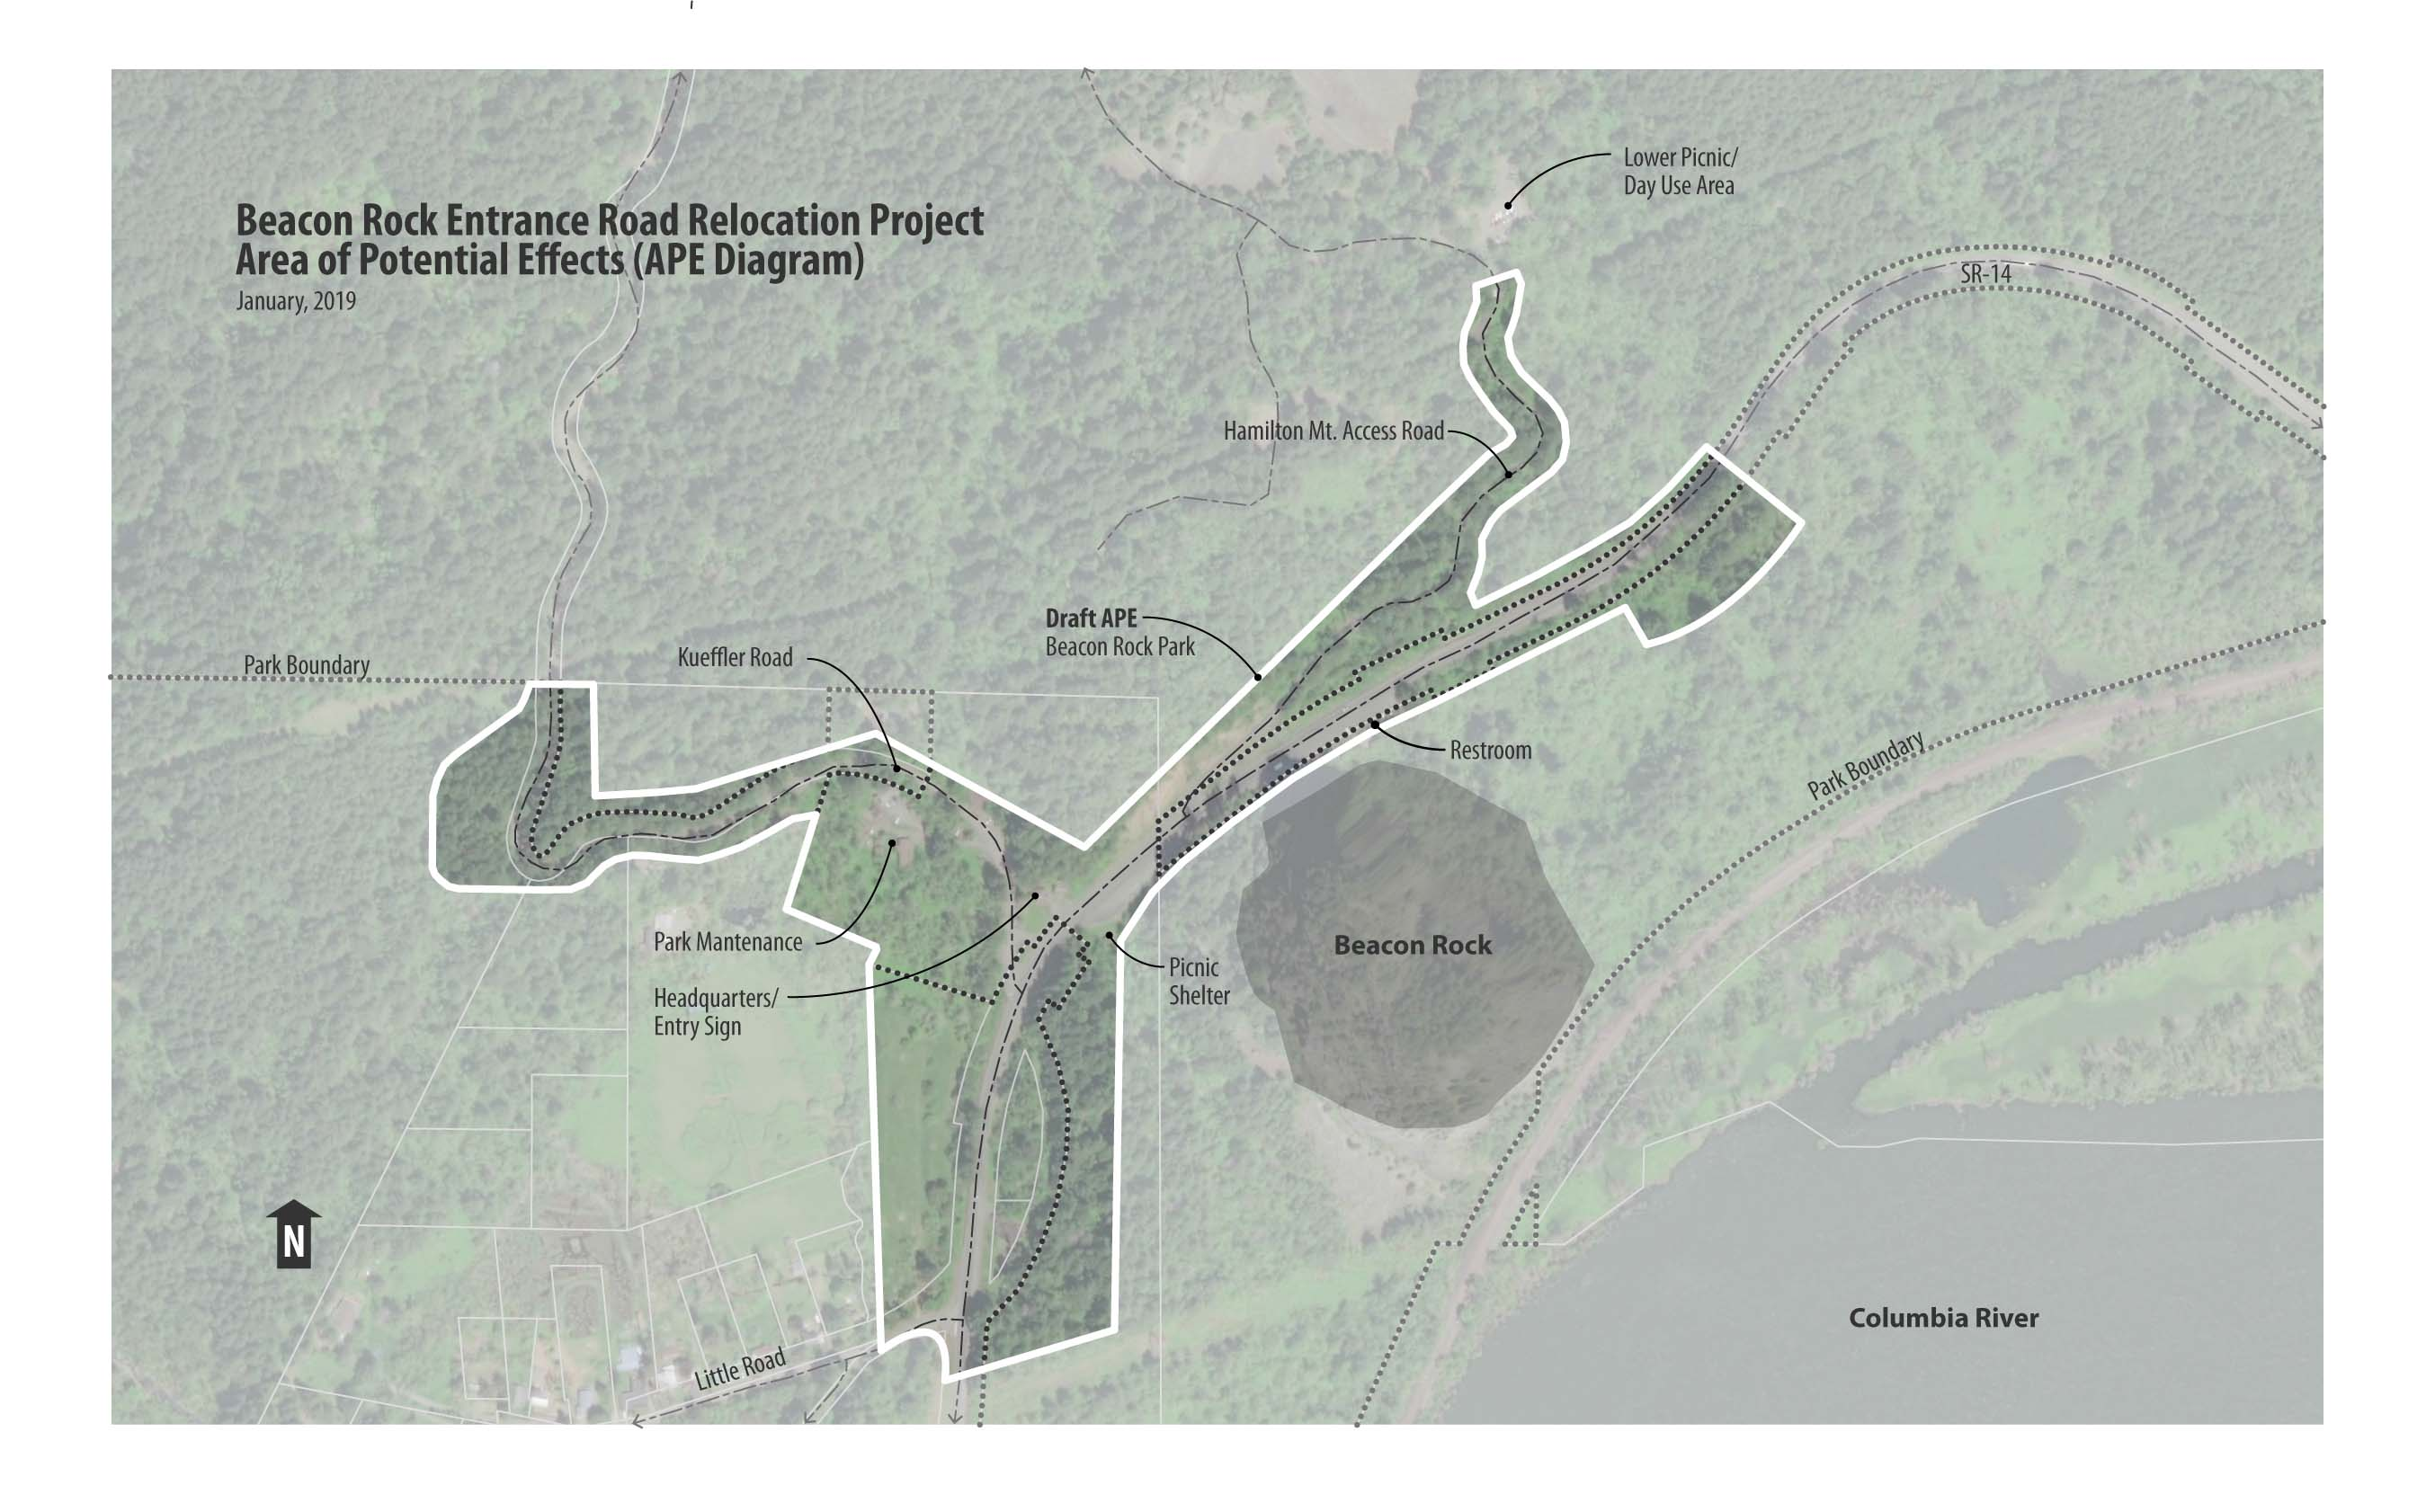 Map showing Entrance Road Relocation Area Potential Effects